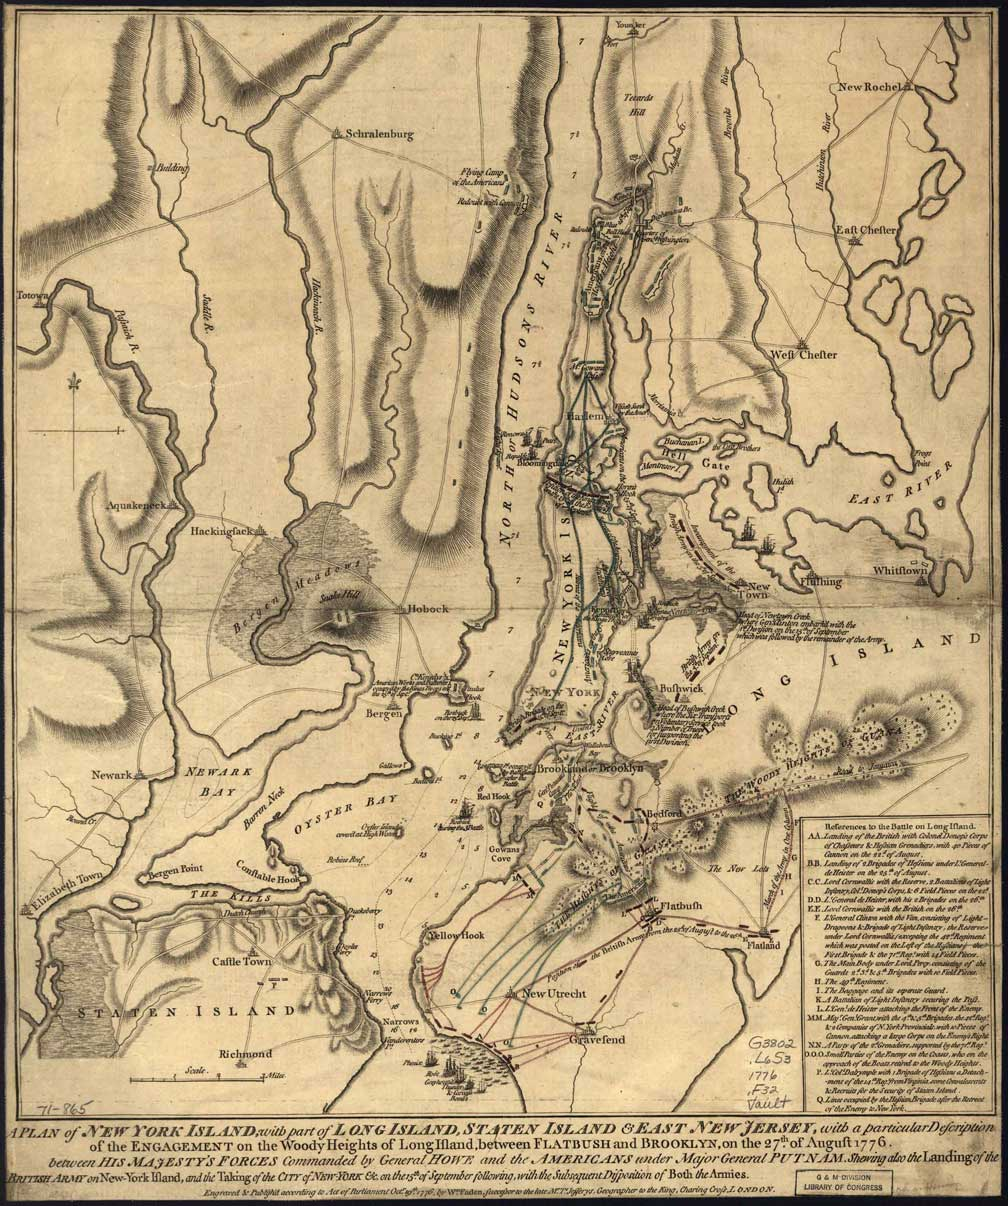 Revolutionary War Map Of New York.Battle Of New York